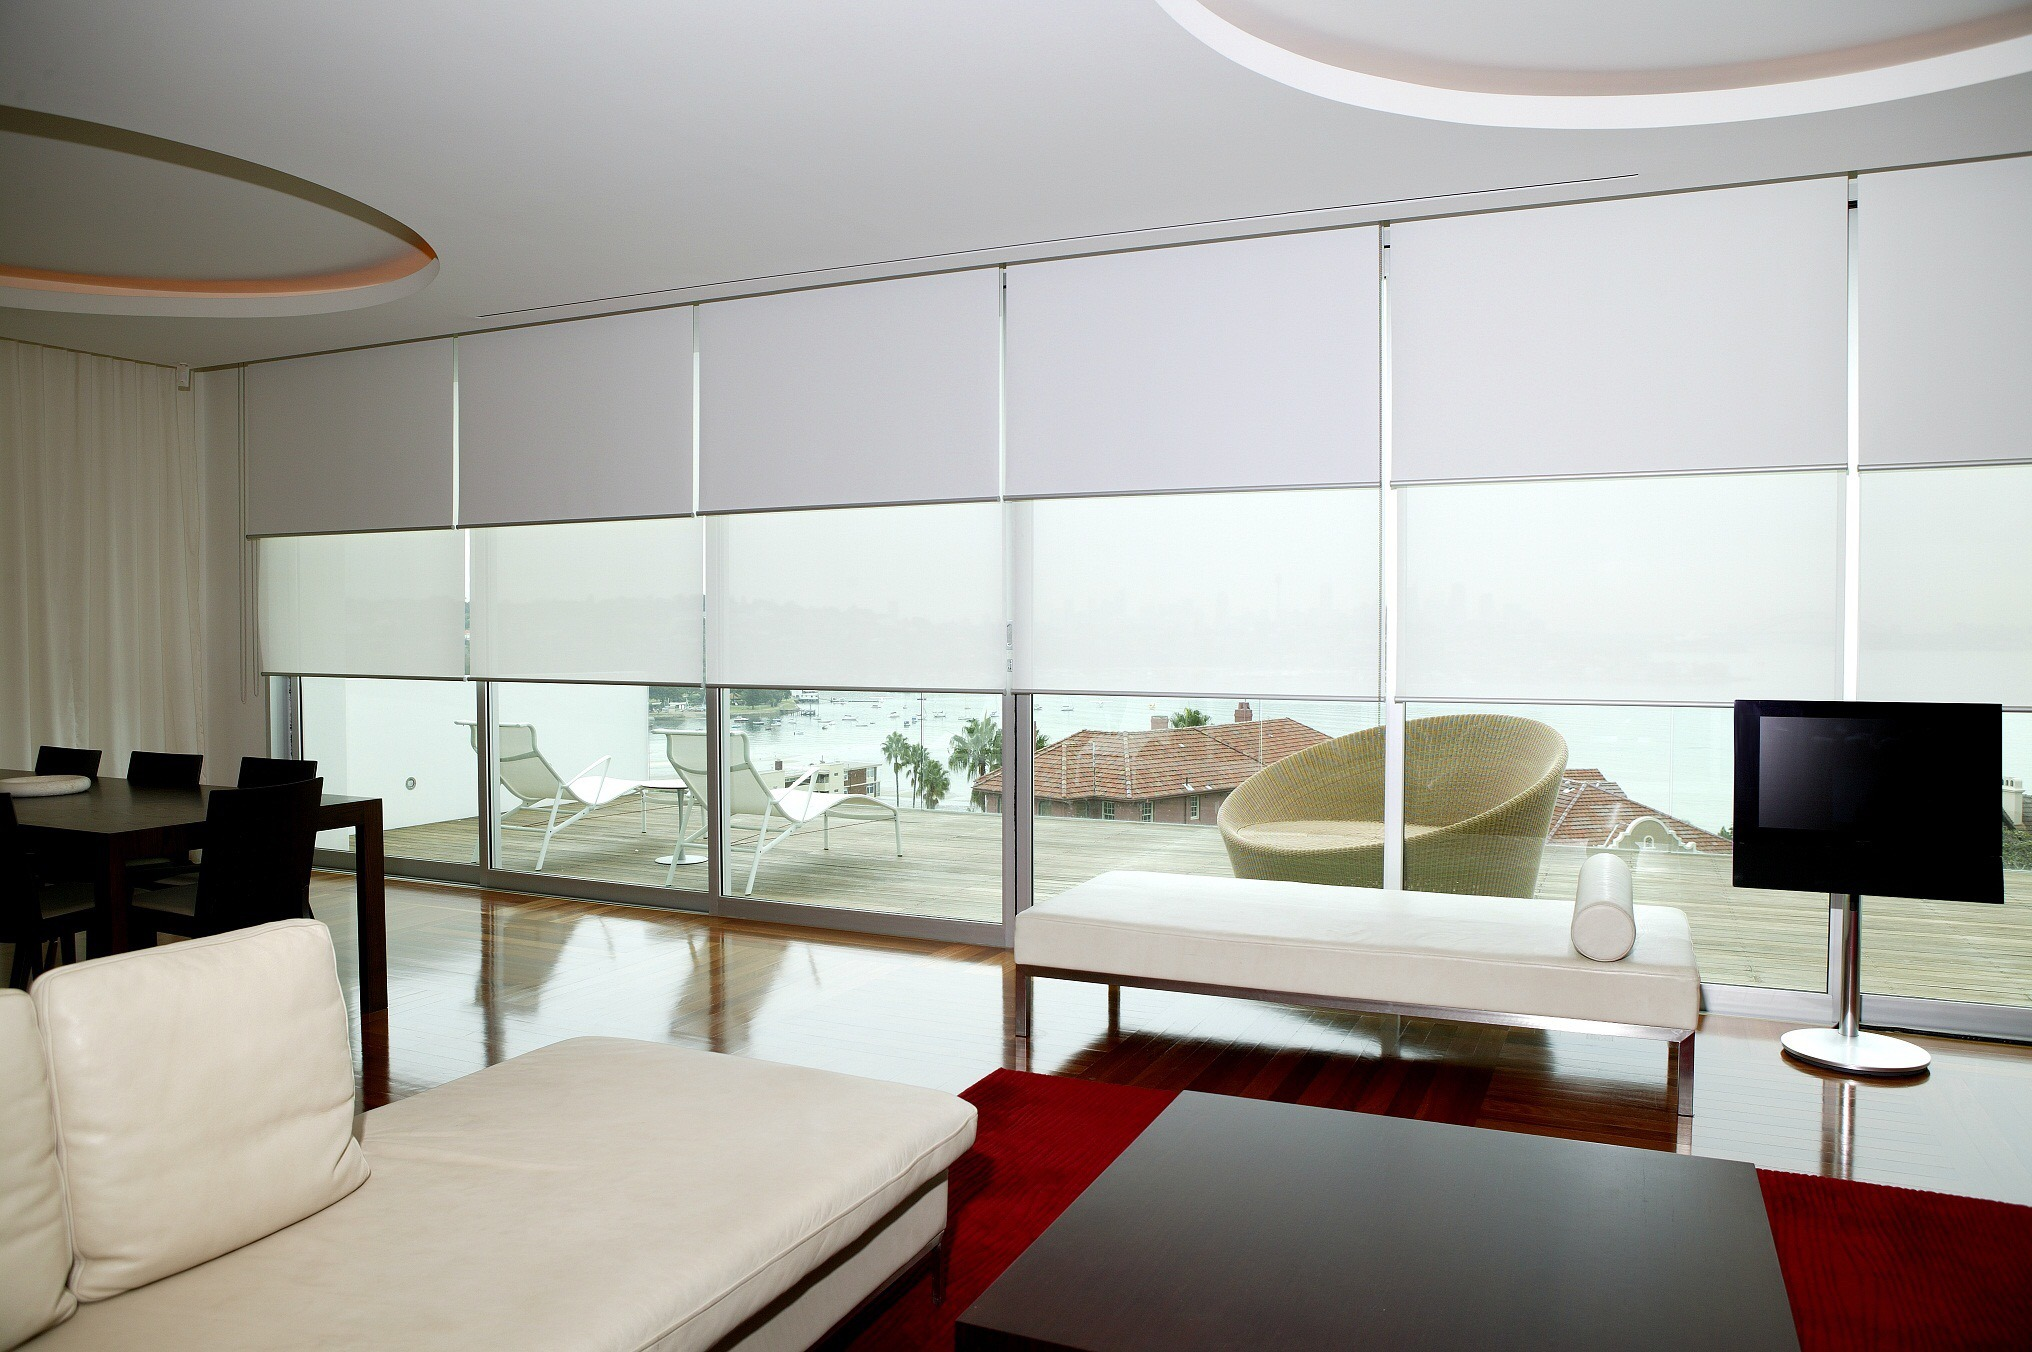 pd for china windows blinds with polyester aluminum fabric double toprail roller